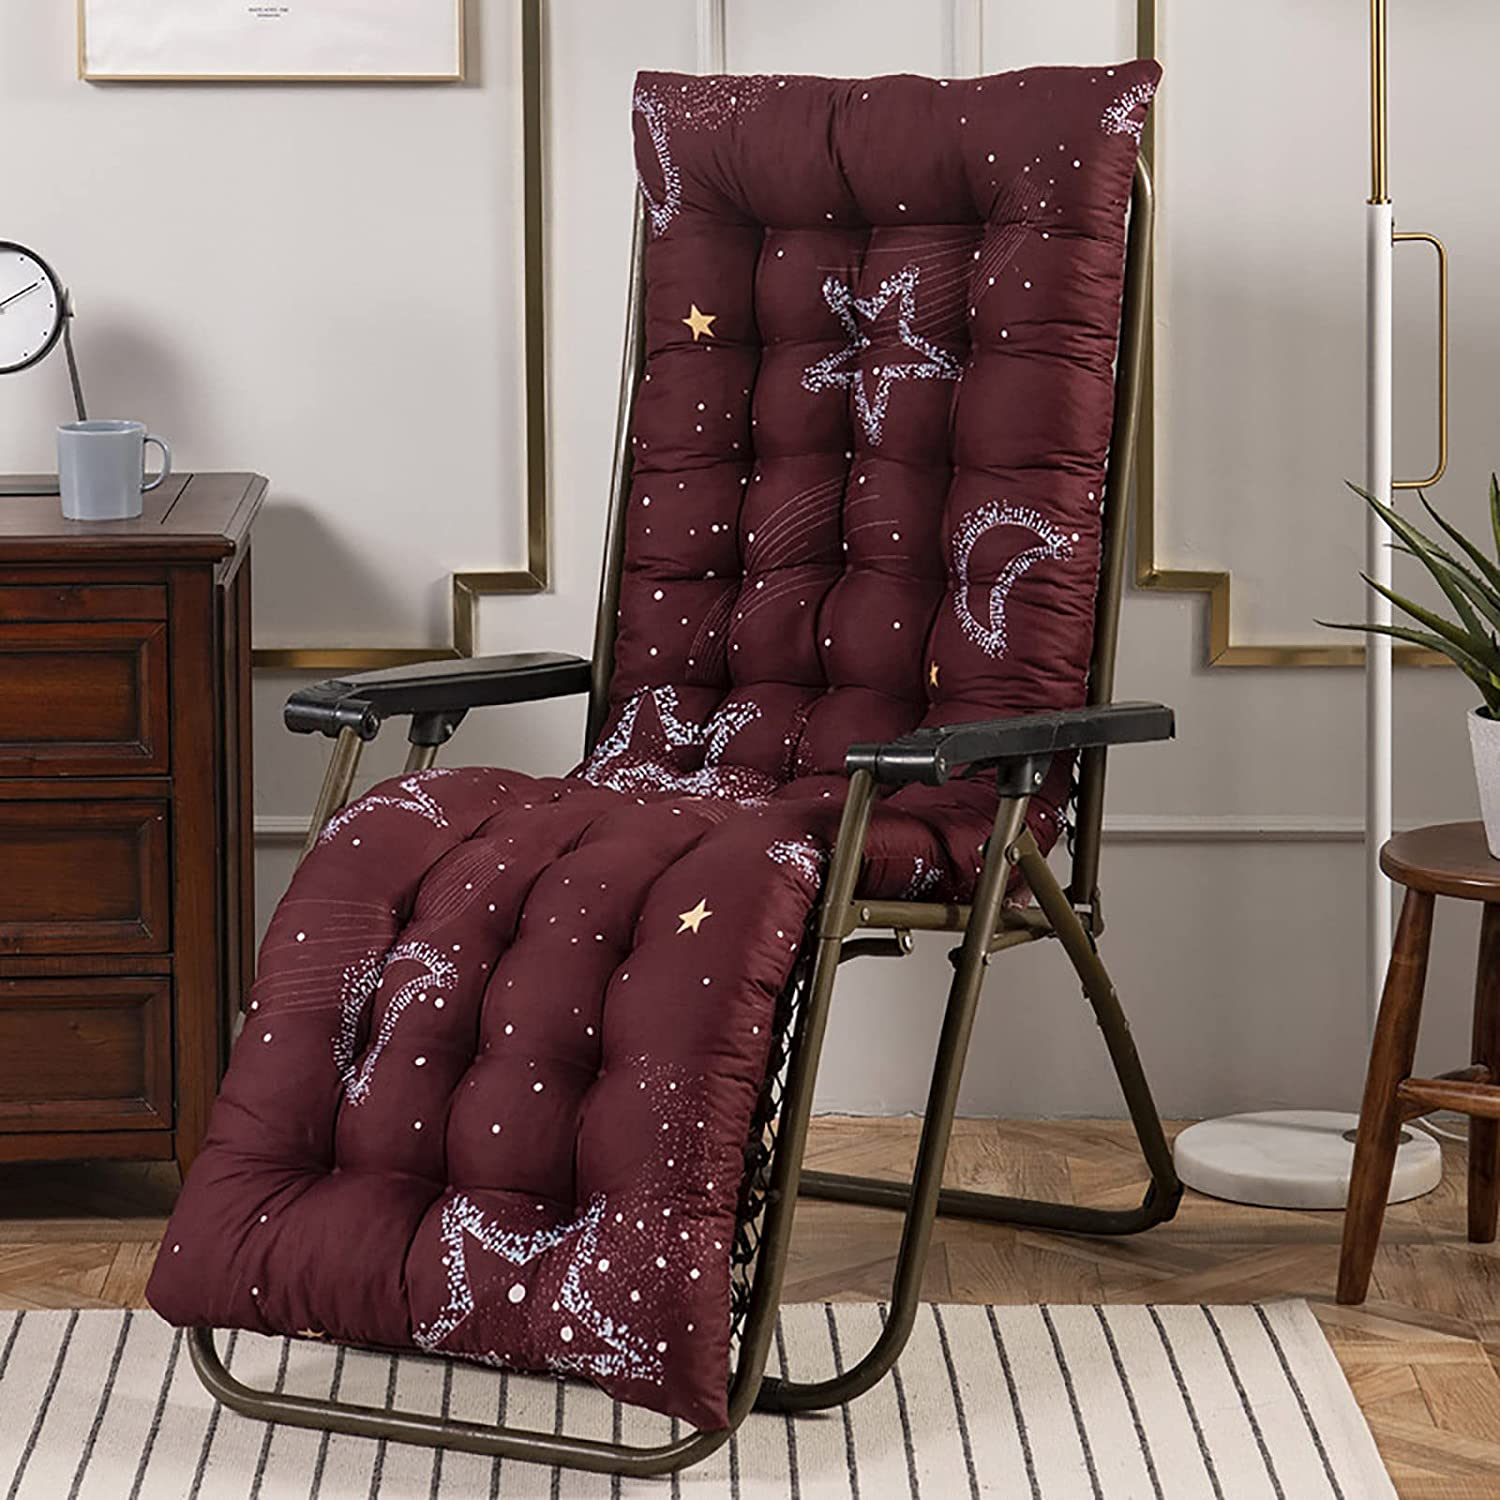 Cotton Seat Cushion Thick Lounger Minneapolis Mall Chaise Com Don't miss the campaign Breathable